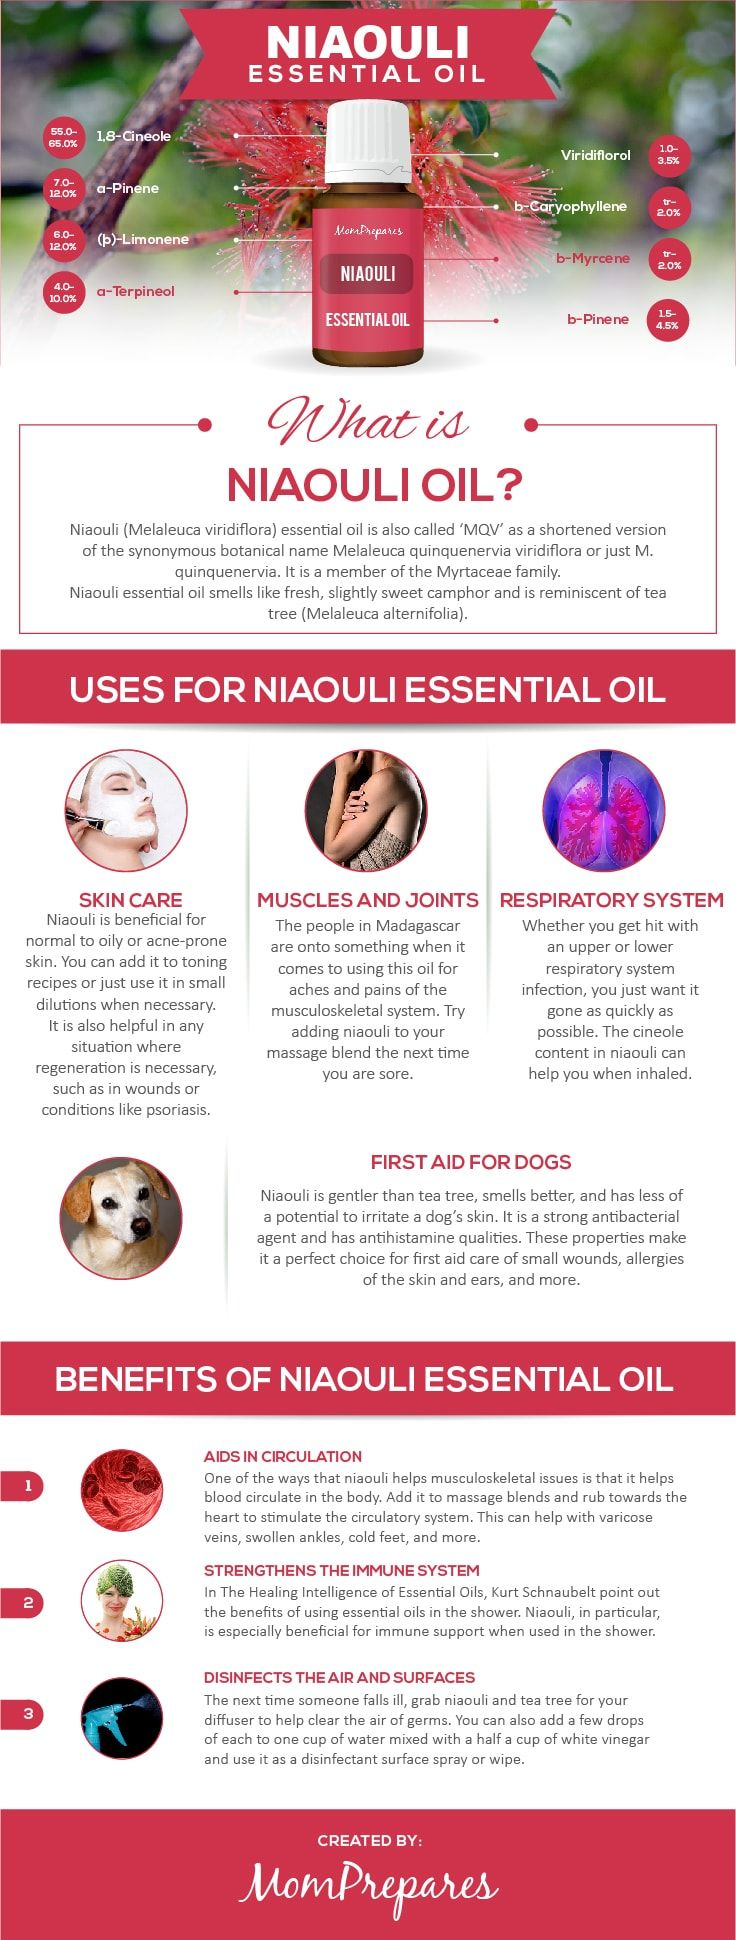 Niaouli Essential Oil has some amazing uses and health benefits. This guide takes an unbiased research-backed approach to provide only the facts. via @momprepares